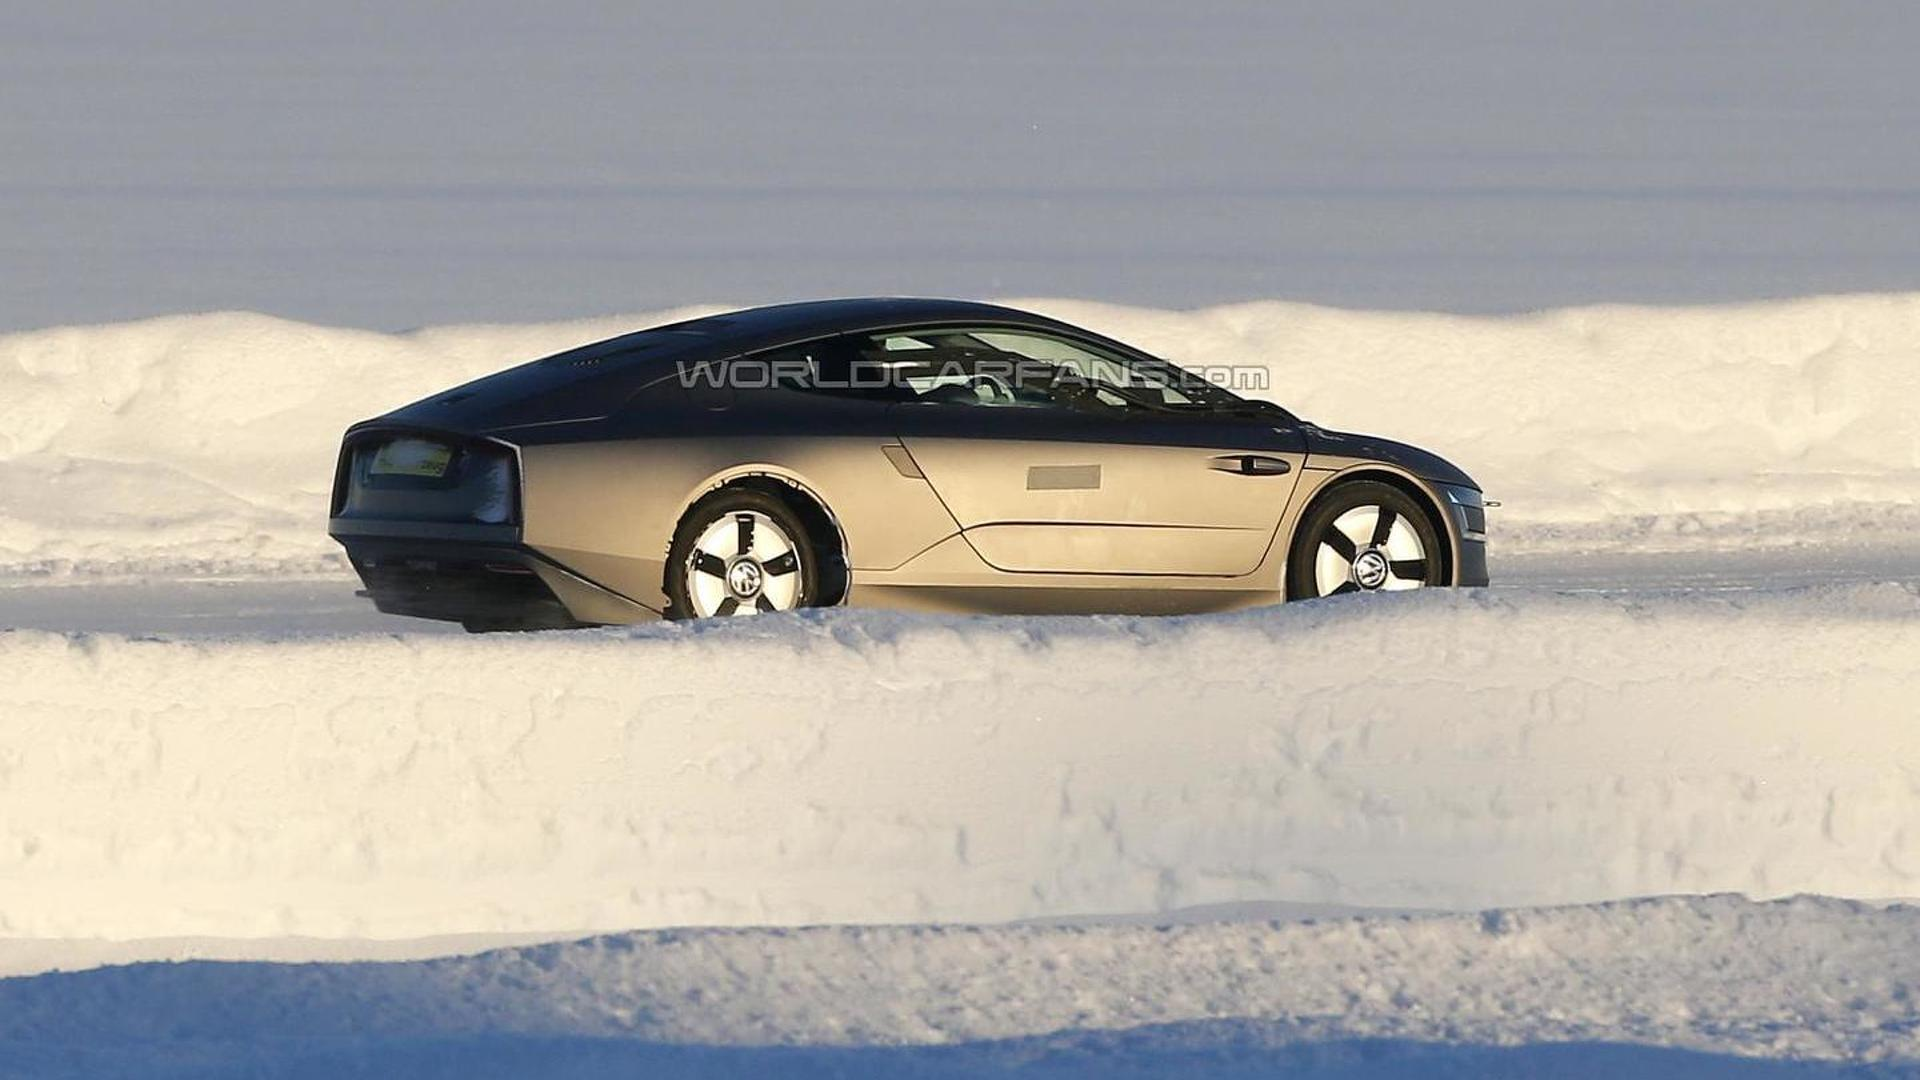 Volkswagen XL1 poses for the camera